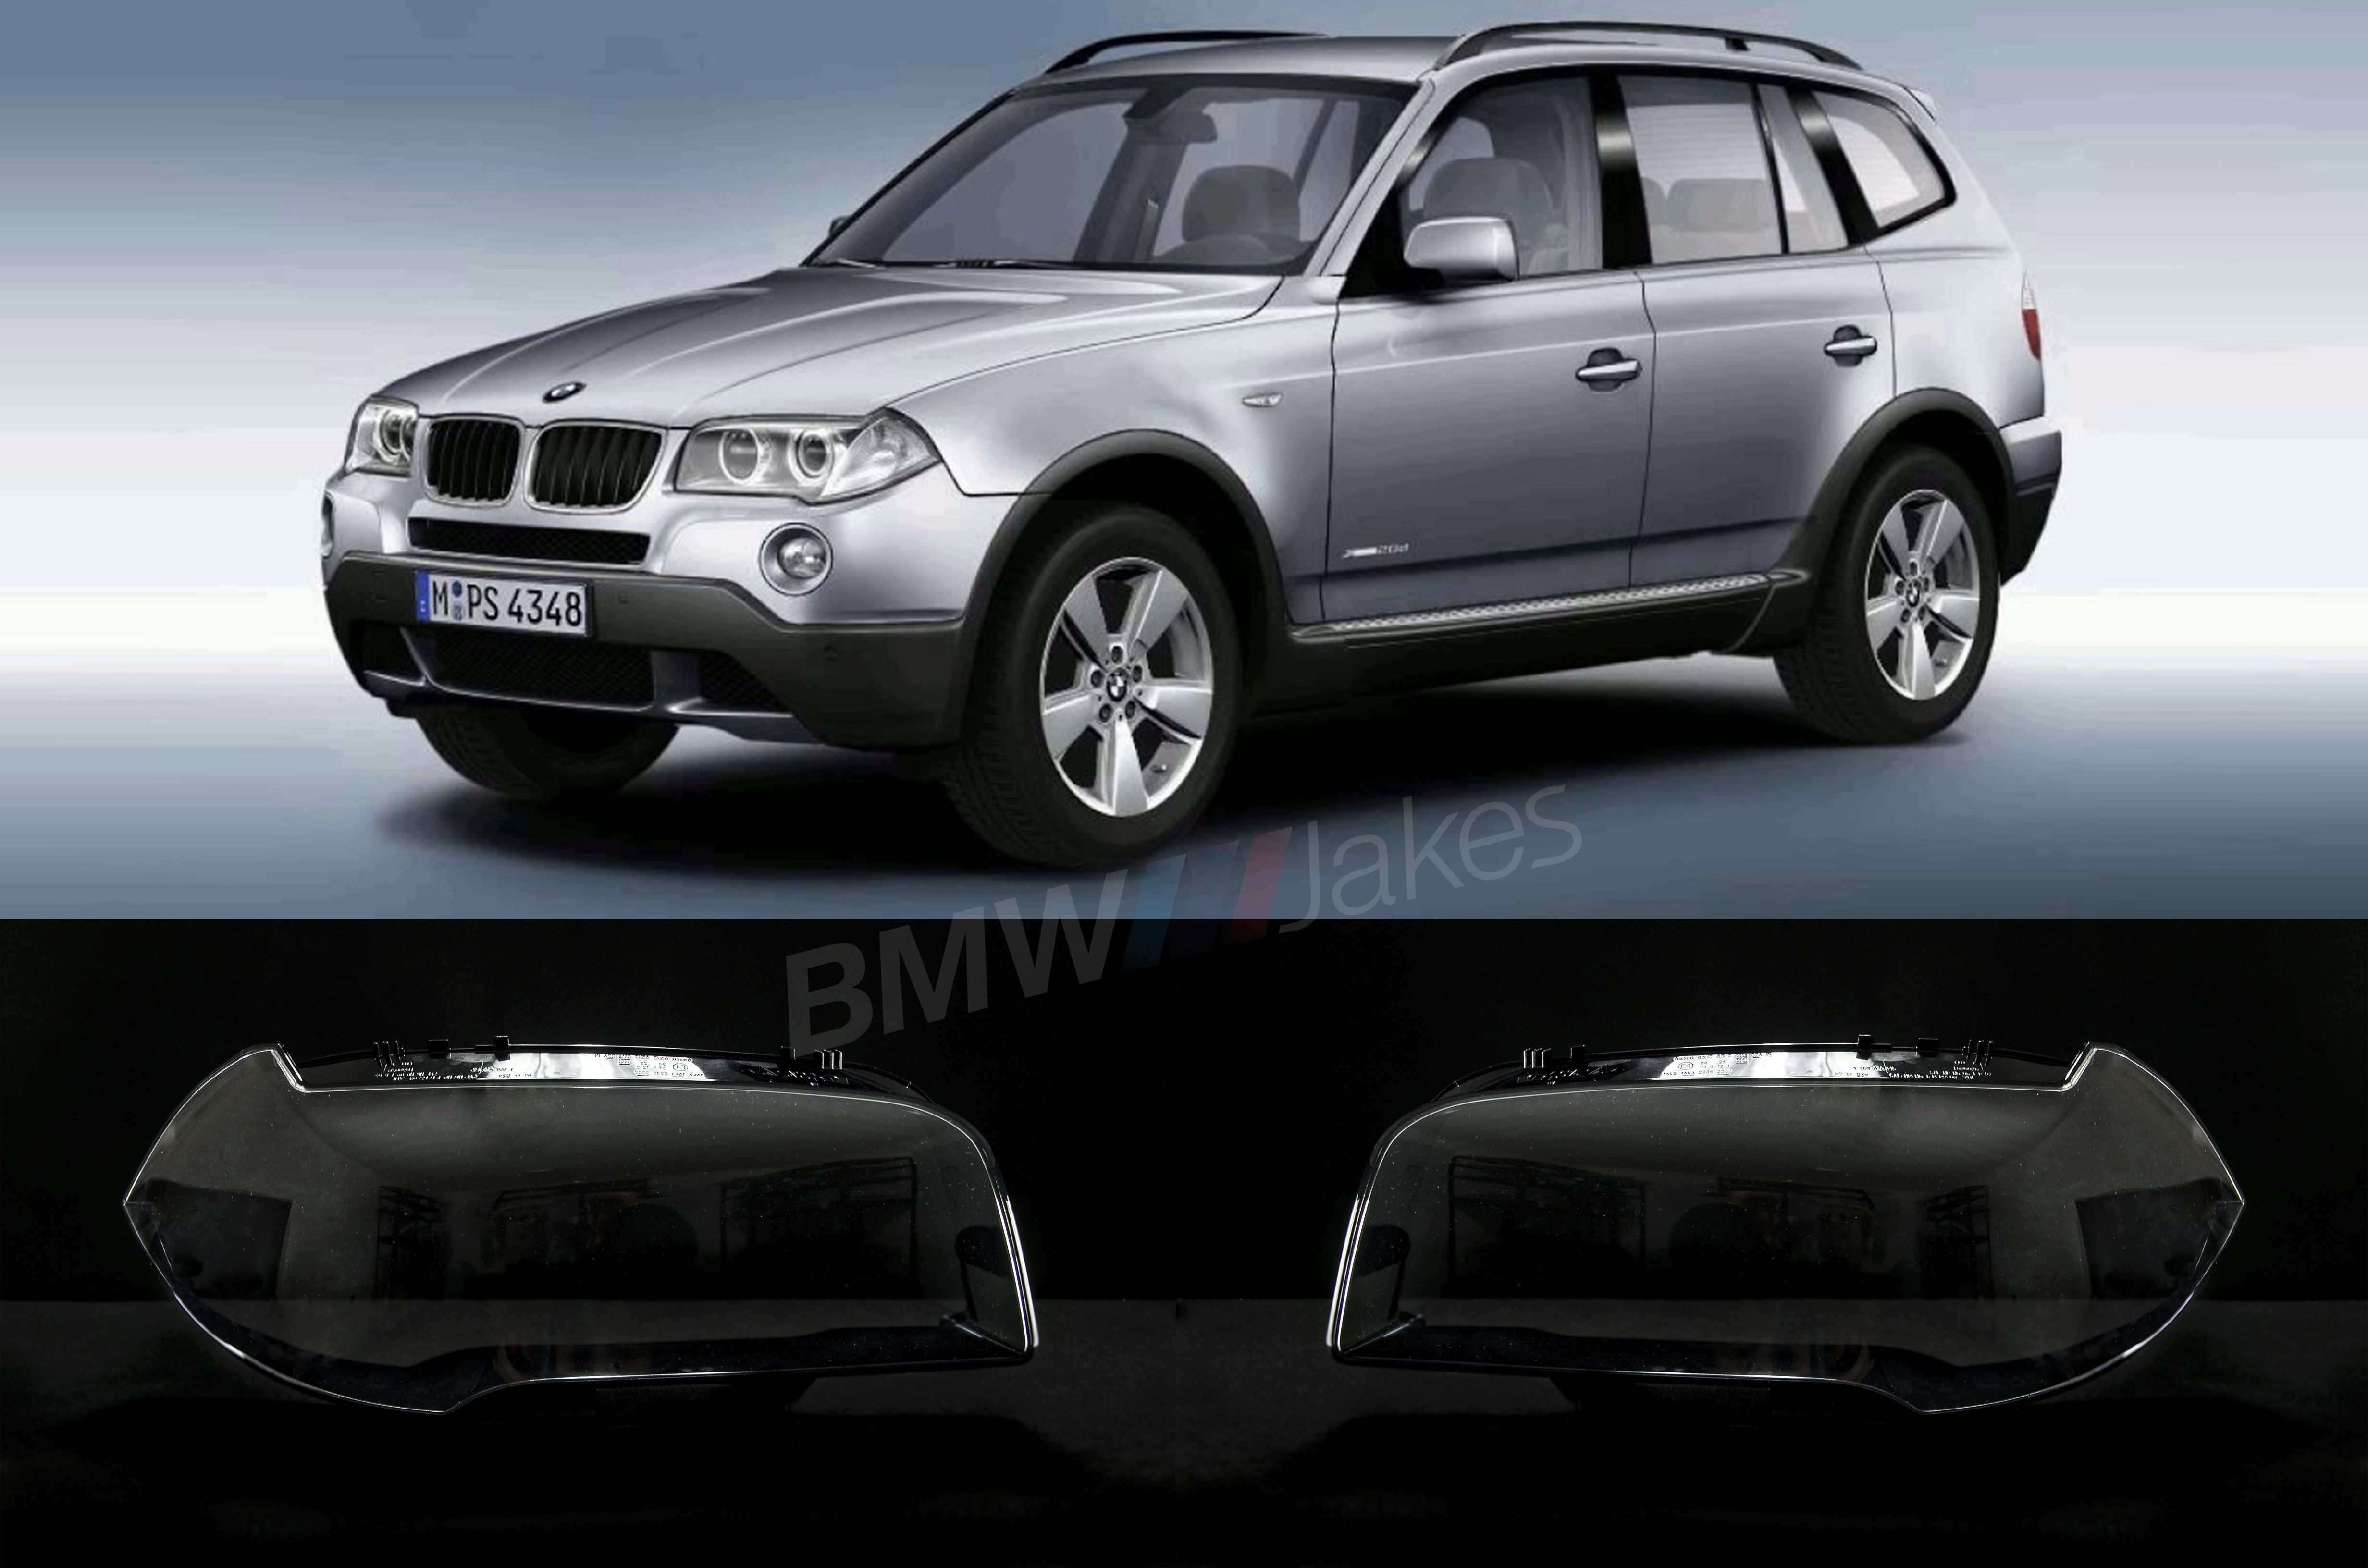 Bmw X3 E83 2004 2009 Headlight Lens Covers Aftermarket Top Quality Bmw X3 E83 Bmw X3 Headlight Lens